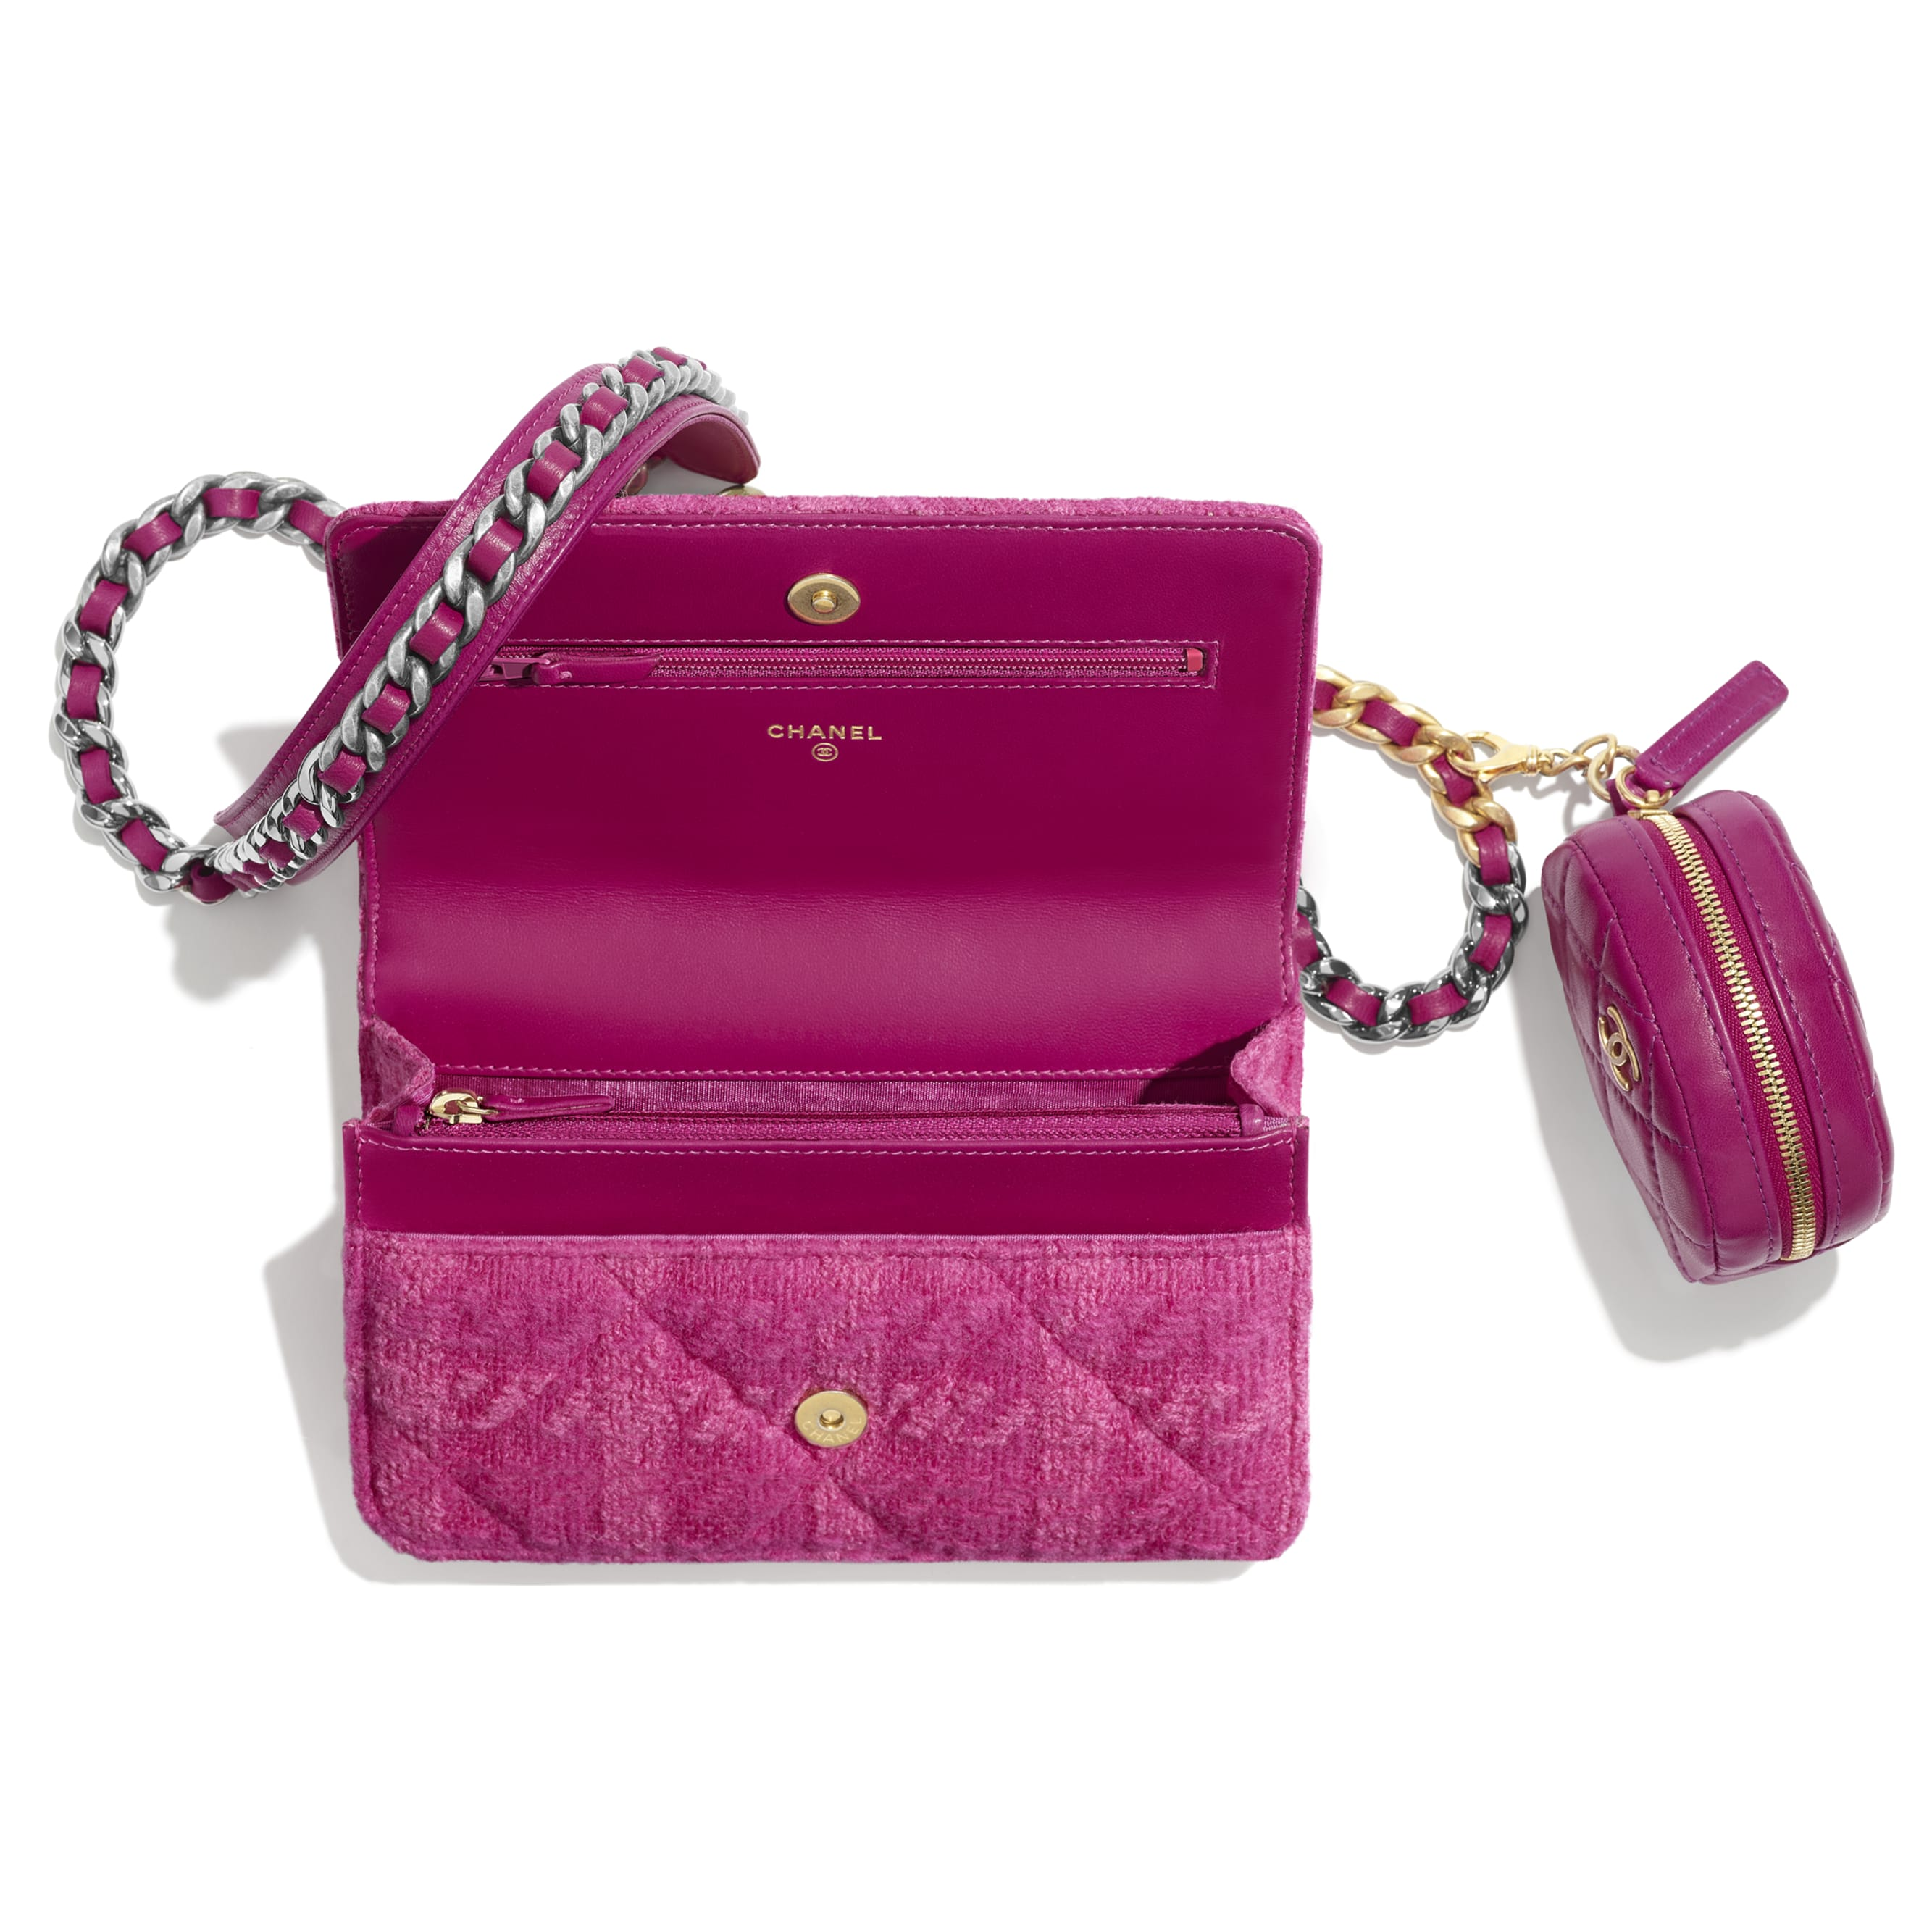 CHANEL 19 Wallet on Chain & Coin Purse - Fuchsia - Wool Tweed, Lambskin, Gold-Tone, Silver-Tone & Ruthenium-Finish Metal - Other view - see standard sized version